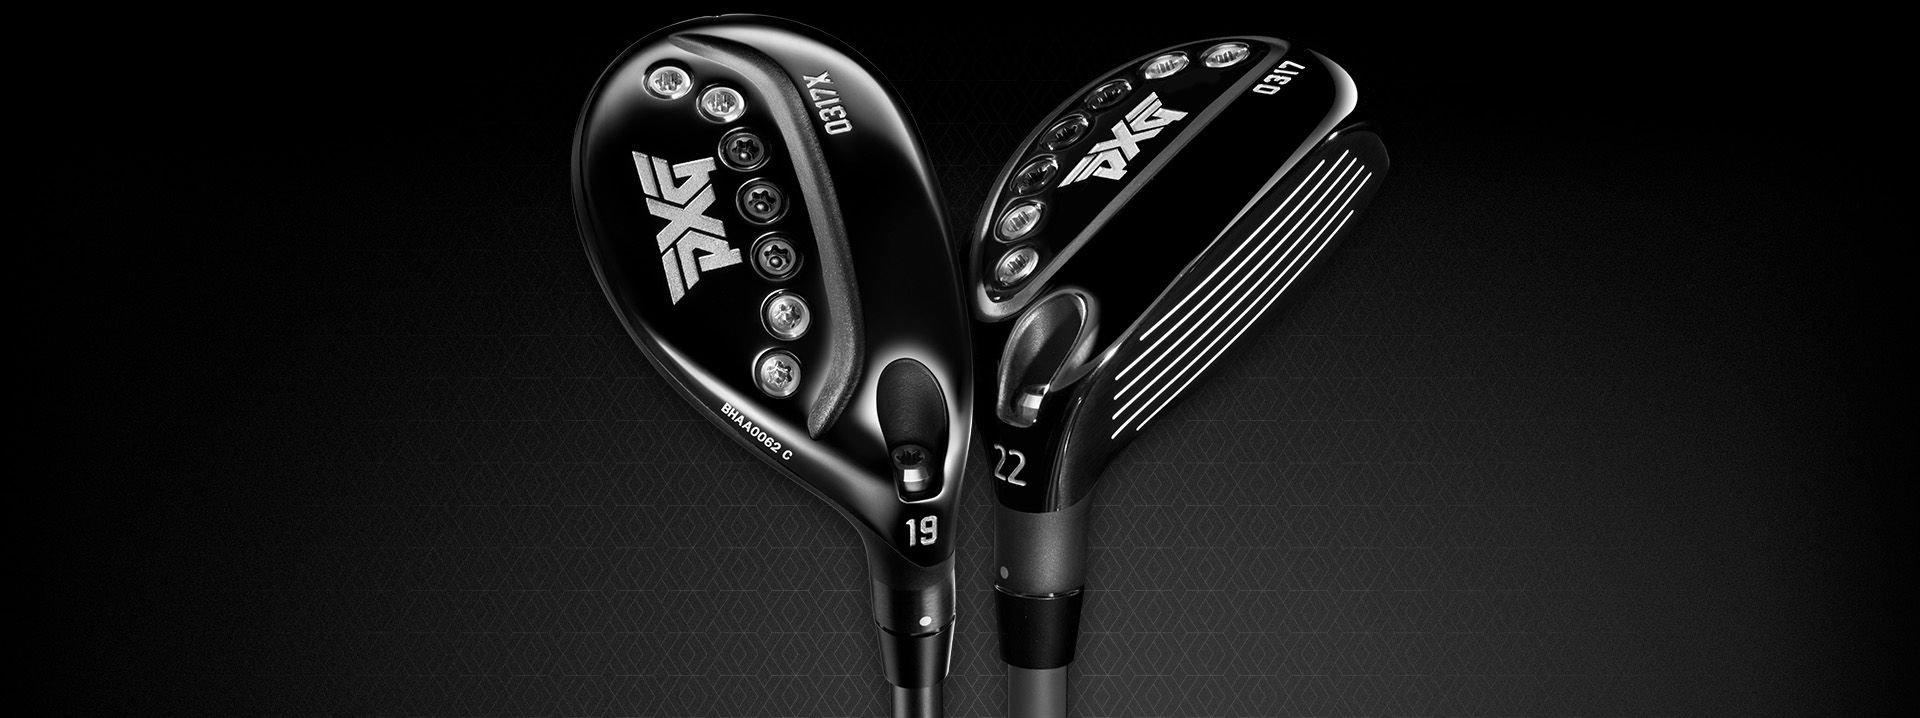 Pin On Drivers Woods And Hybrids Parsons Xtreme Golf Pxg